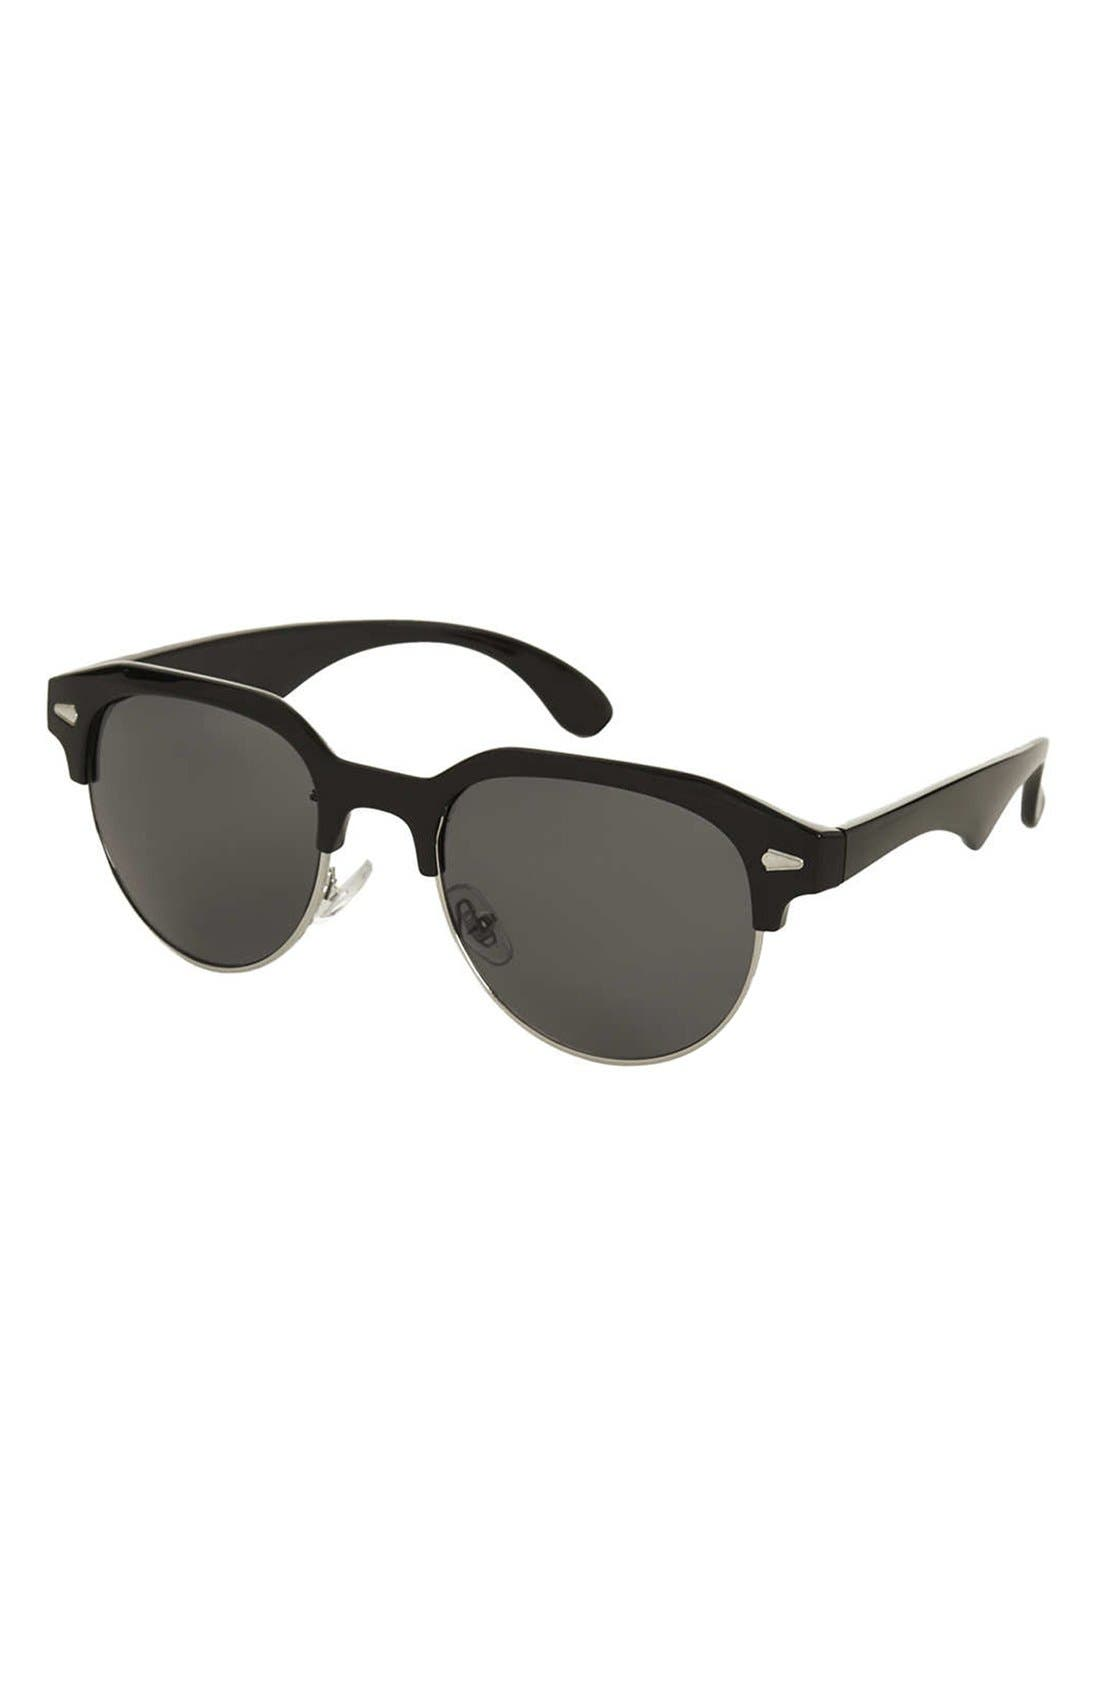 Main Image - Topshop 'Cassie' 50mm Sunglasses